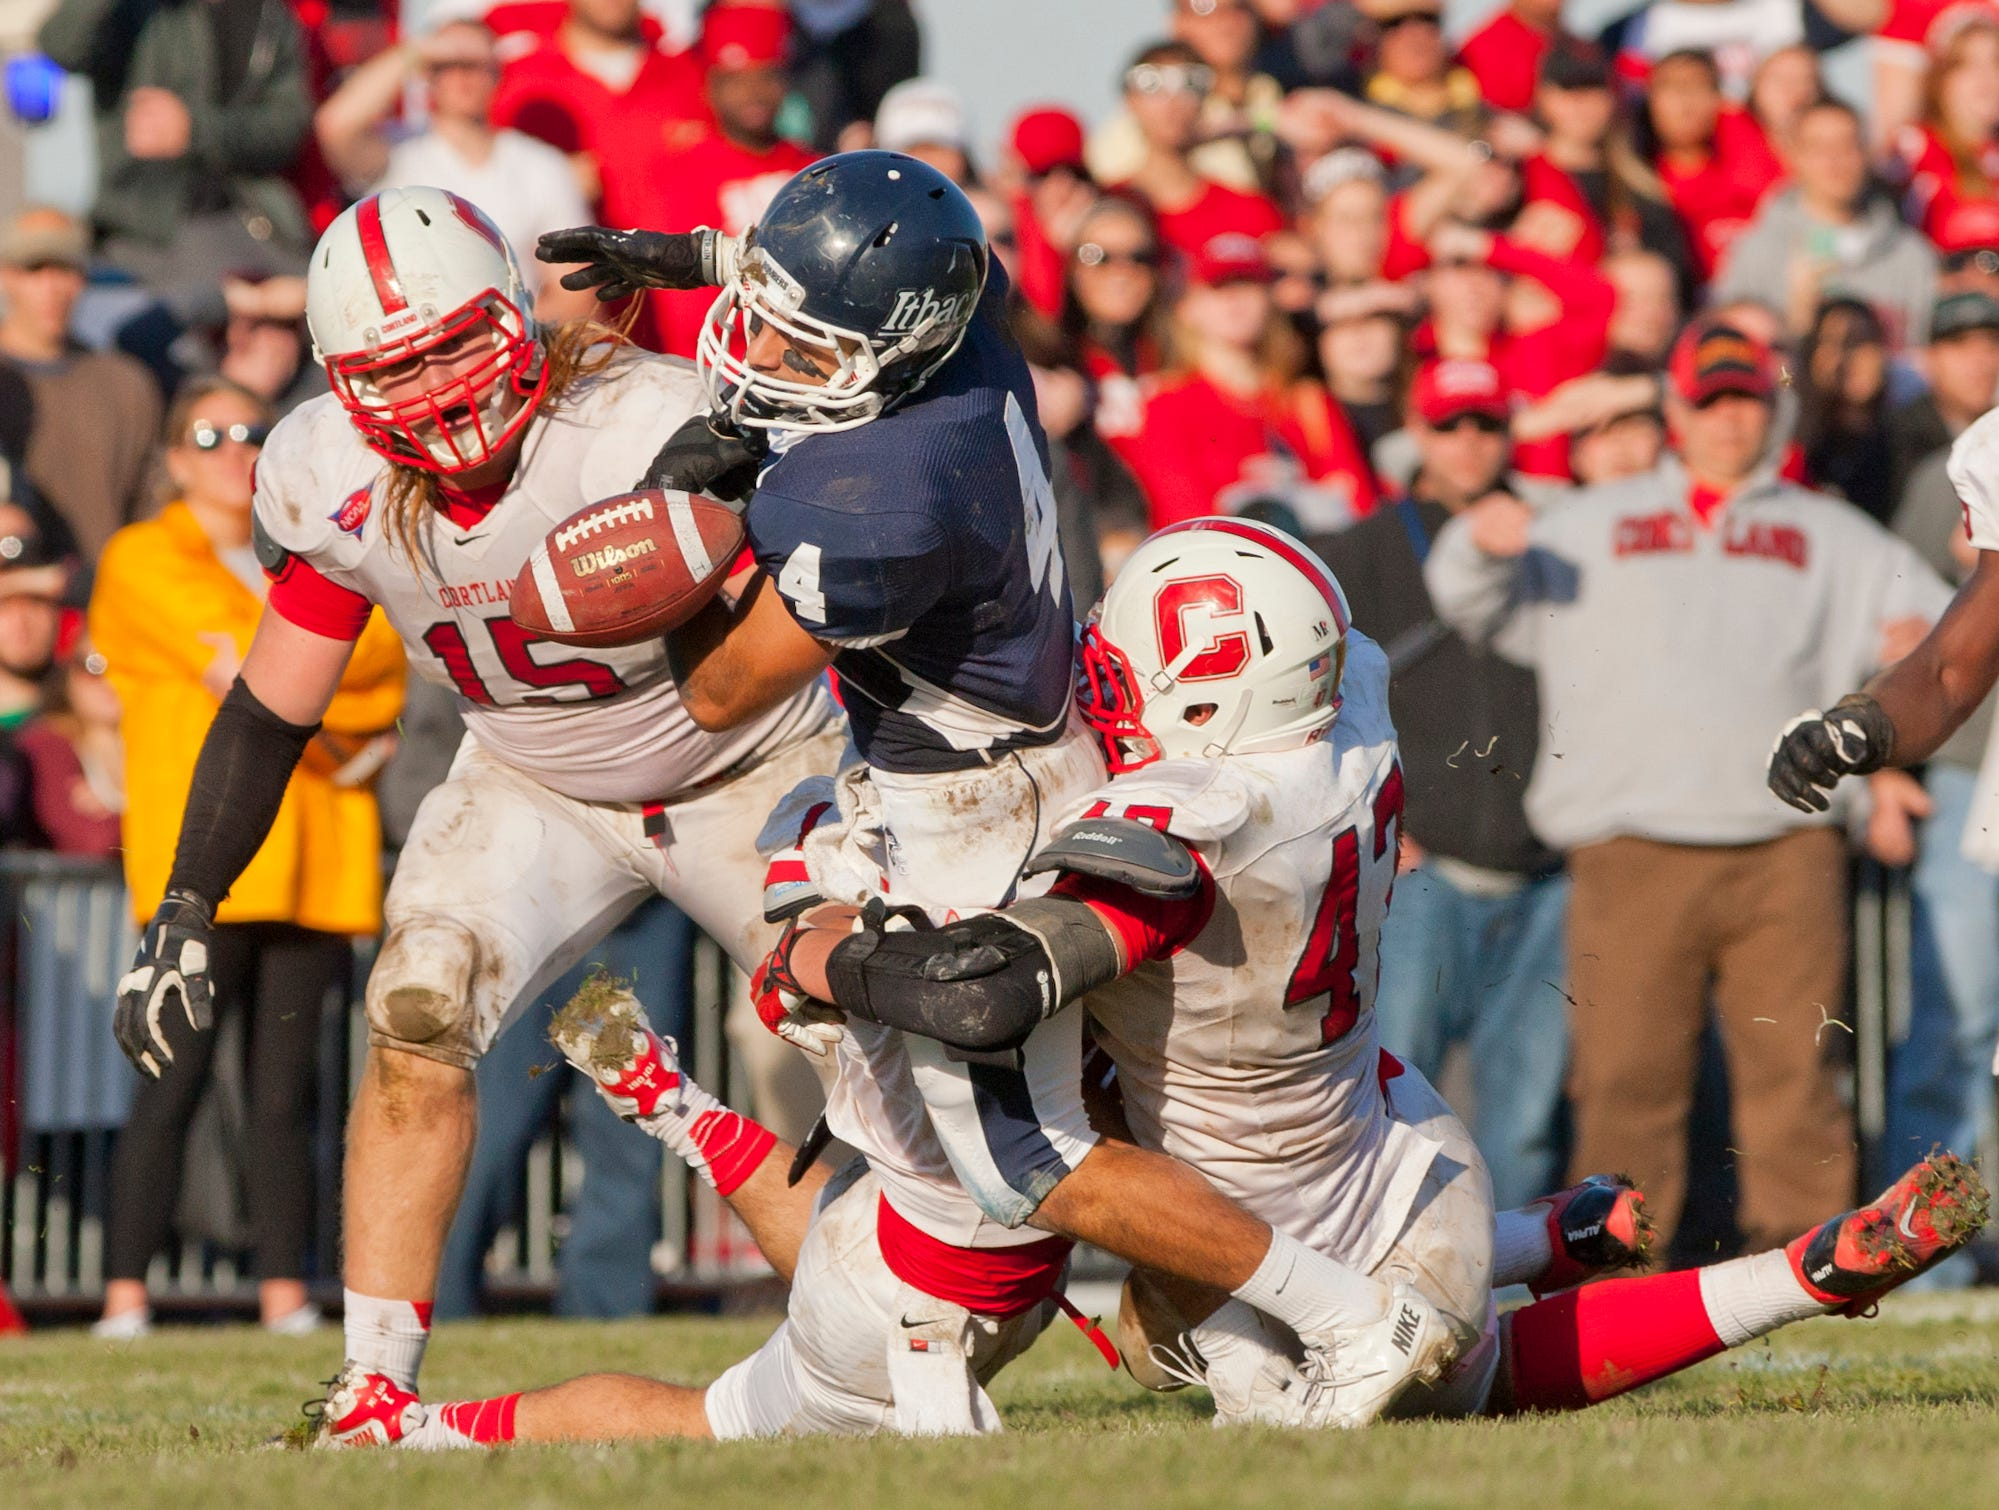 2013: Cortland's Joe DeLuca, left, watches as Ithaca College's Vito Boffoli, center, has the ball stripped by Cortland's Tom Hagan, right, after the initial hit by Andrew Tolosi, obscured, low, after a pass completion from the Cortland 49 yard line with less than 30 seconds remaining in the  annual Cortaca Jug game at Butterfield Stadium at Ithaca College.